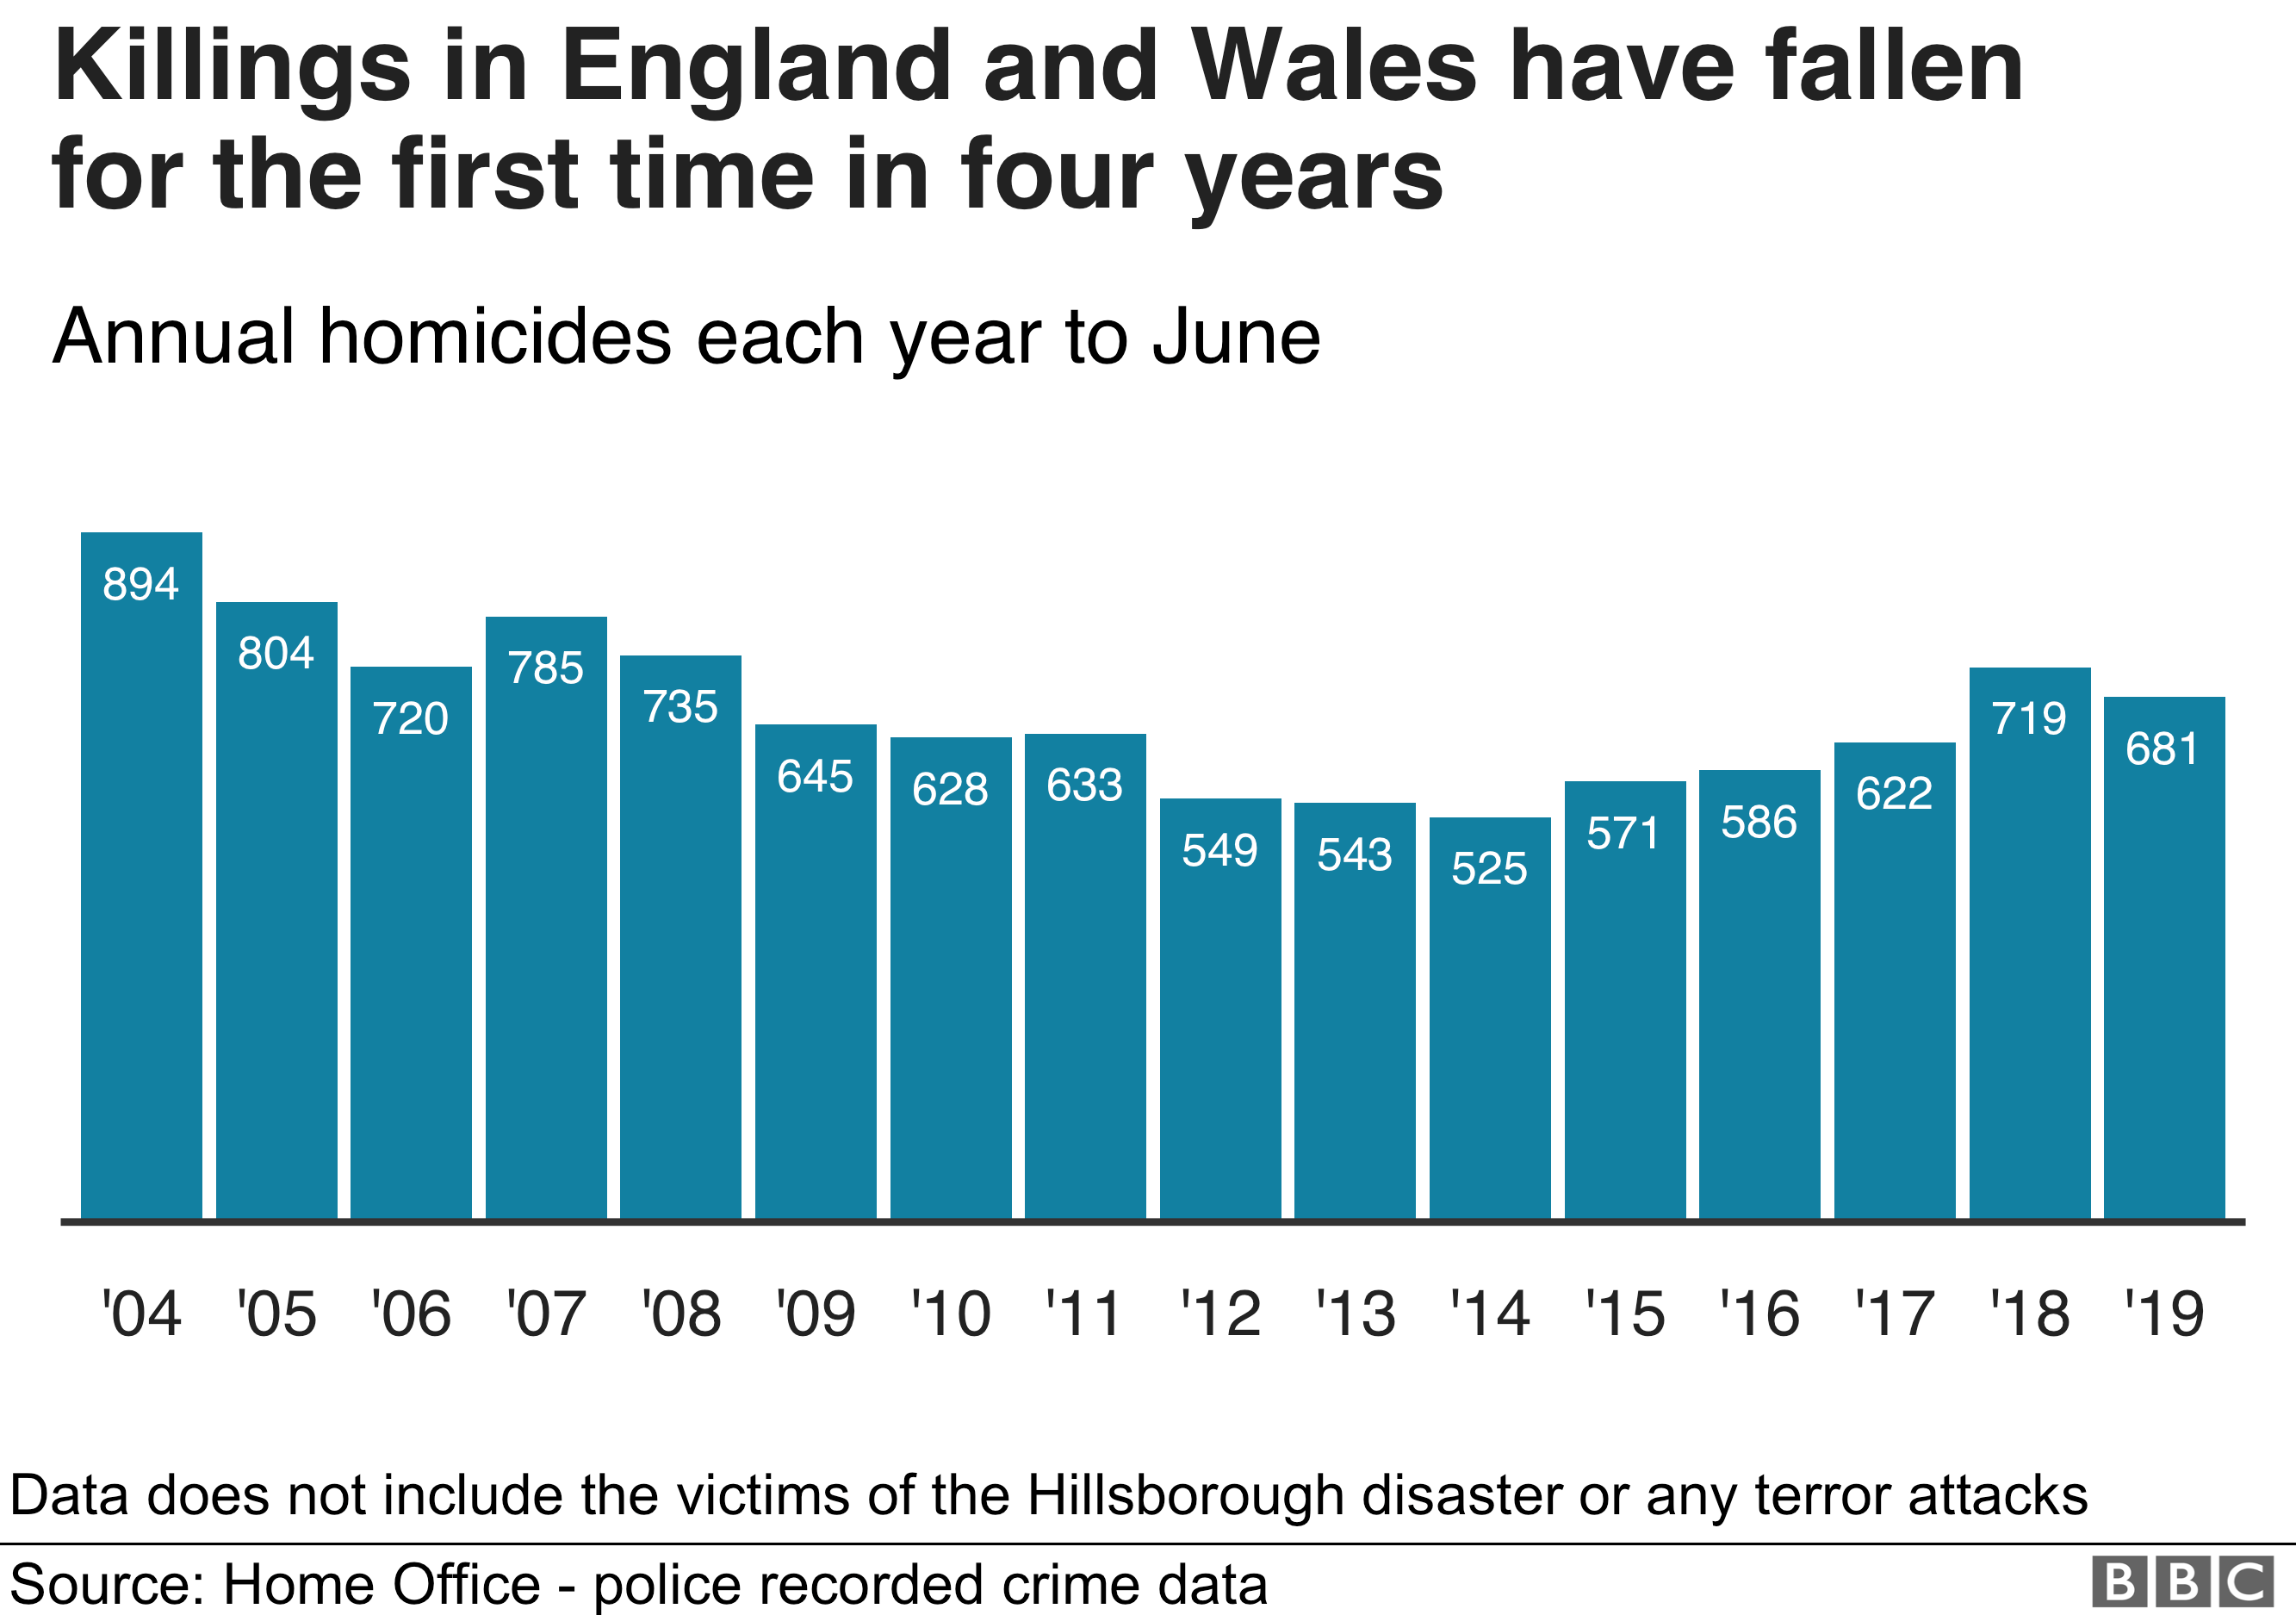 Graph showing killings in England and Wales have fallen for the first time in four years